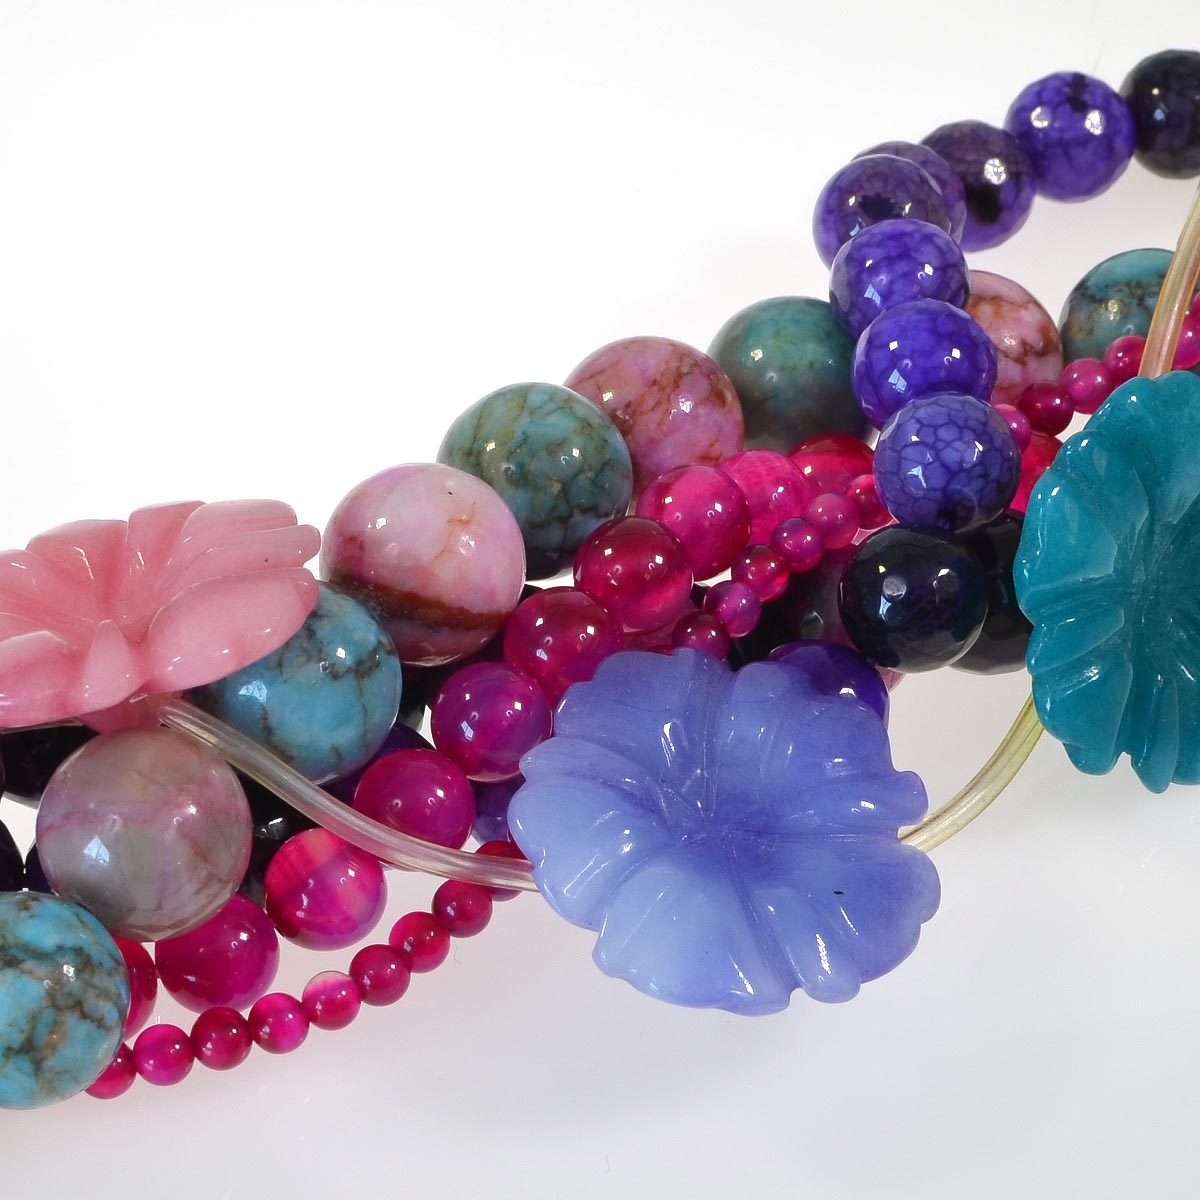 How Can You Tell If Gemstone Beads Are Genuine Or